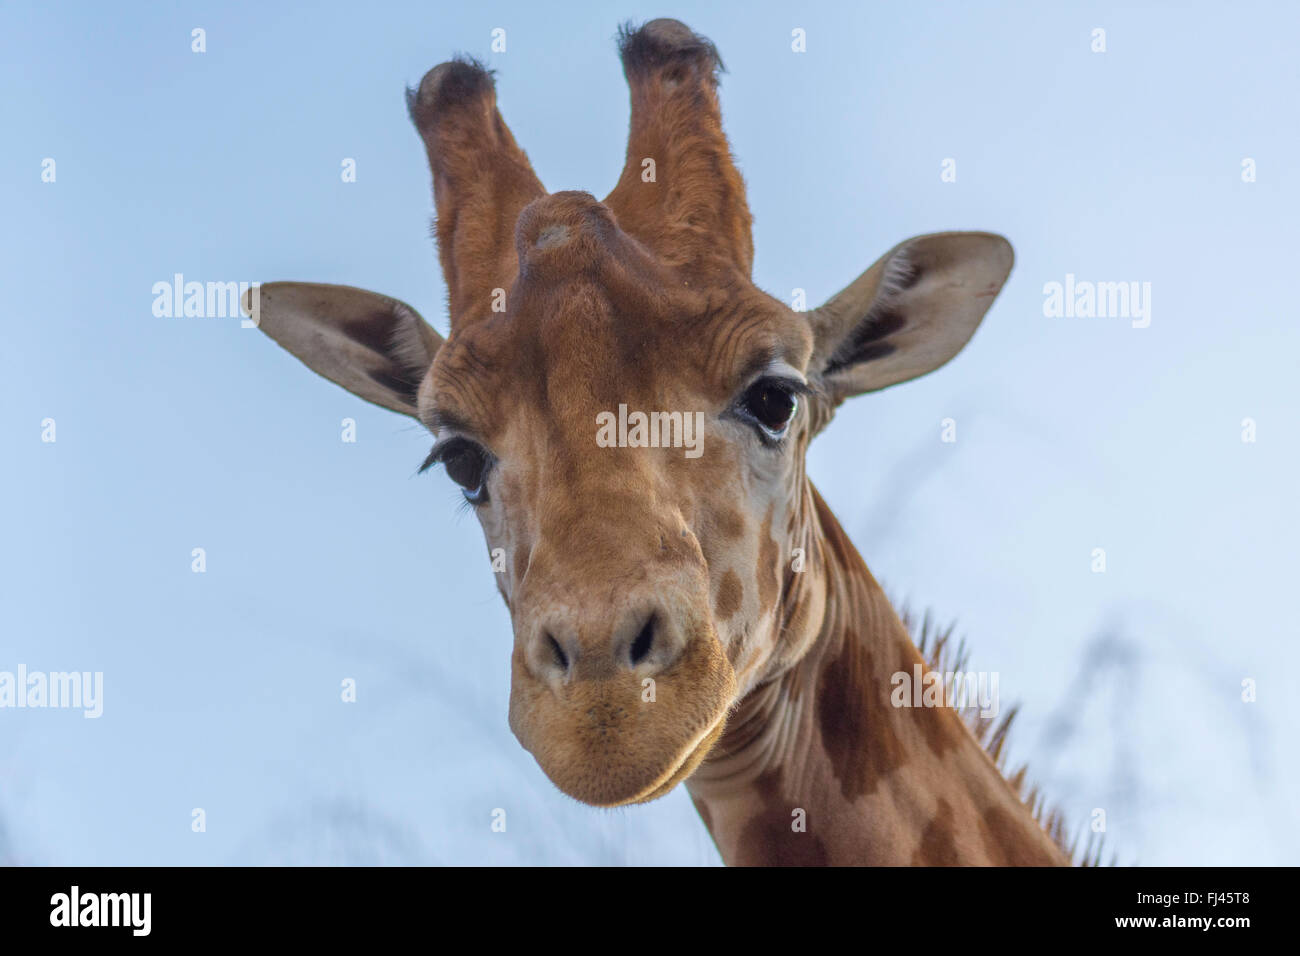 A giraffe looking down - Stock Image